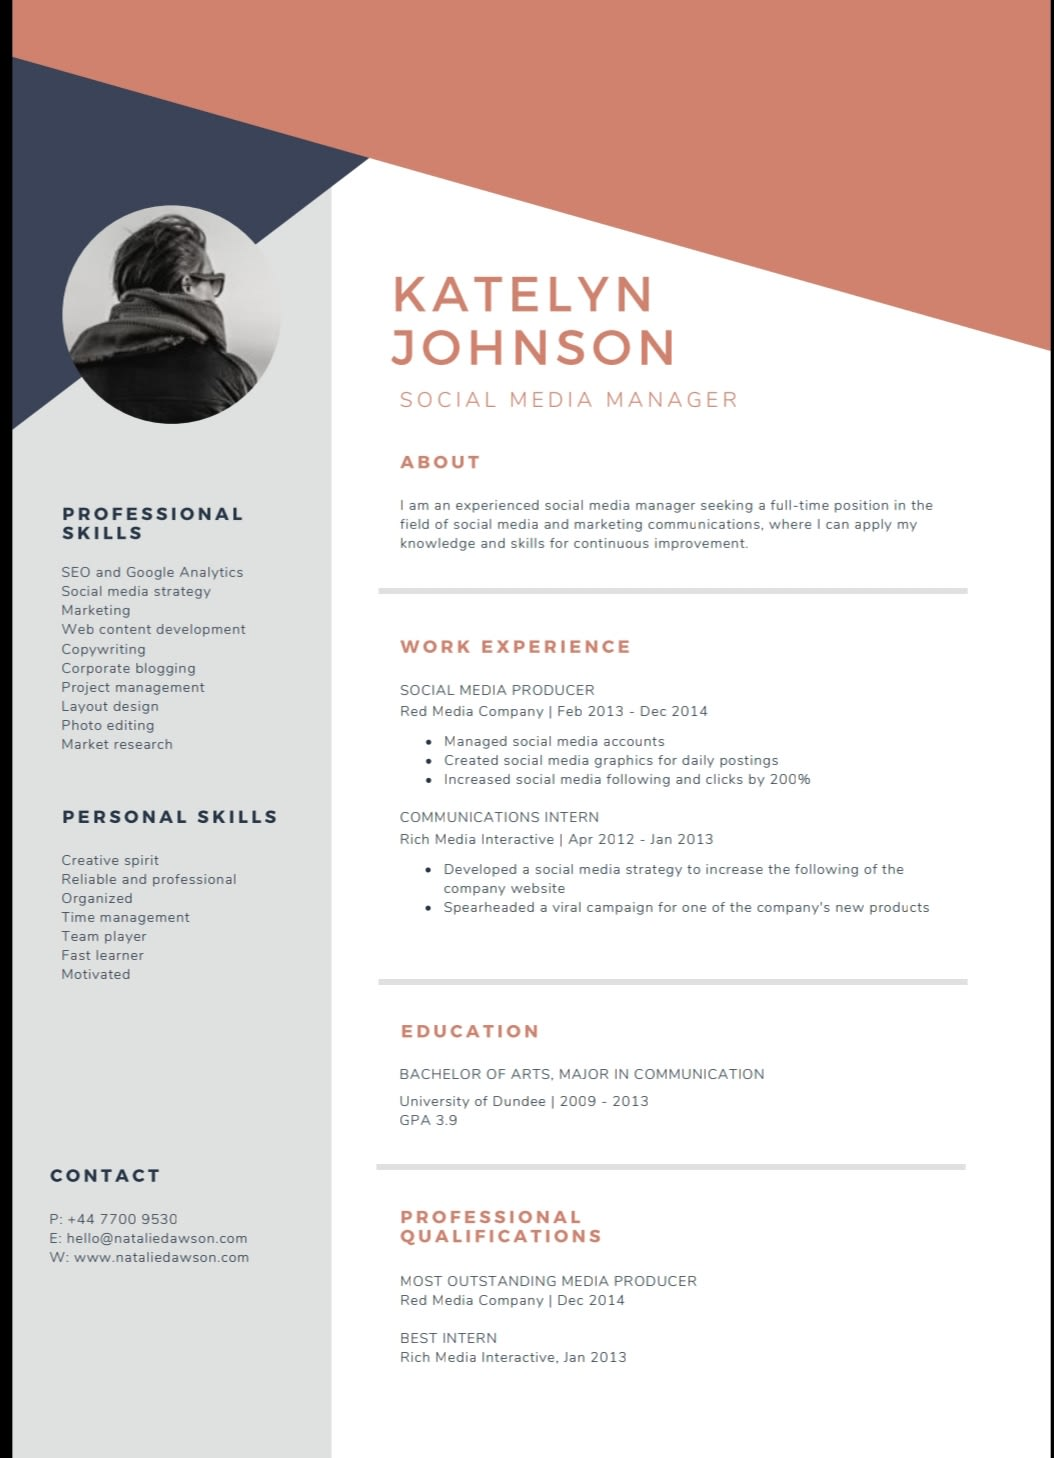 design and edit your resume cv cover letter linkedin by pencraft services medical Resume Pencraft Resume Services